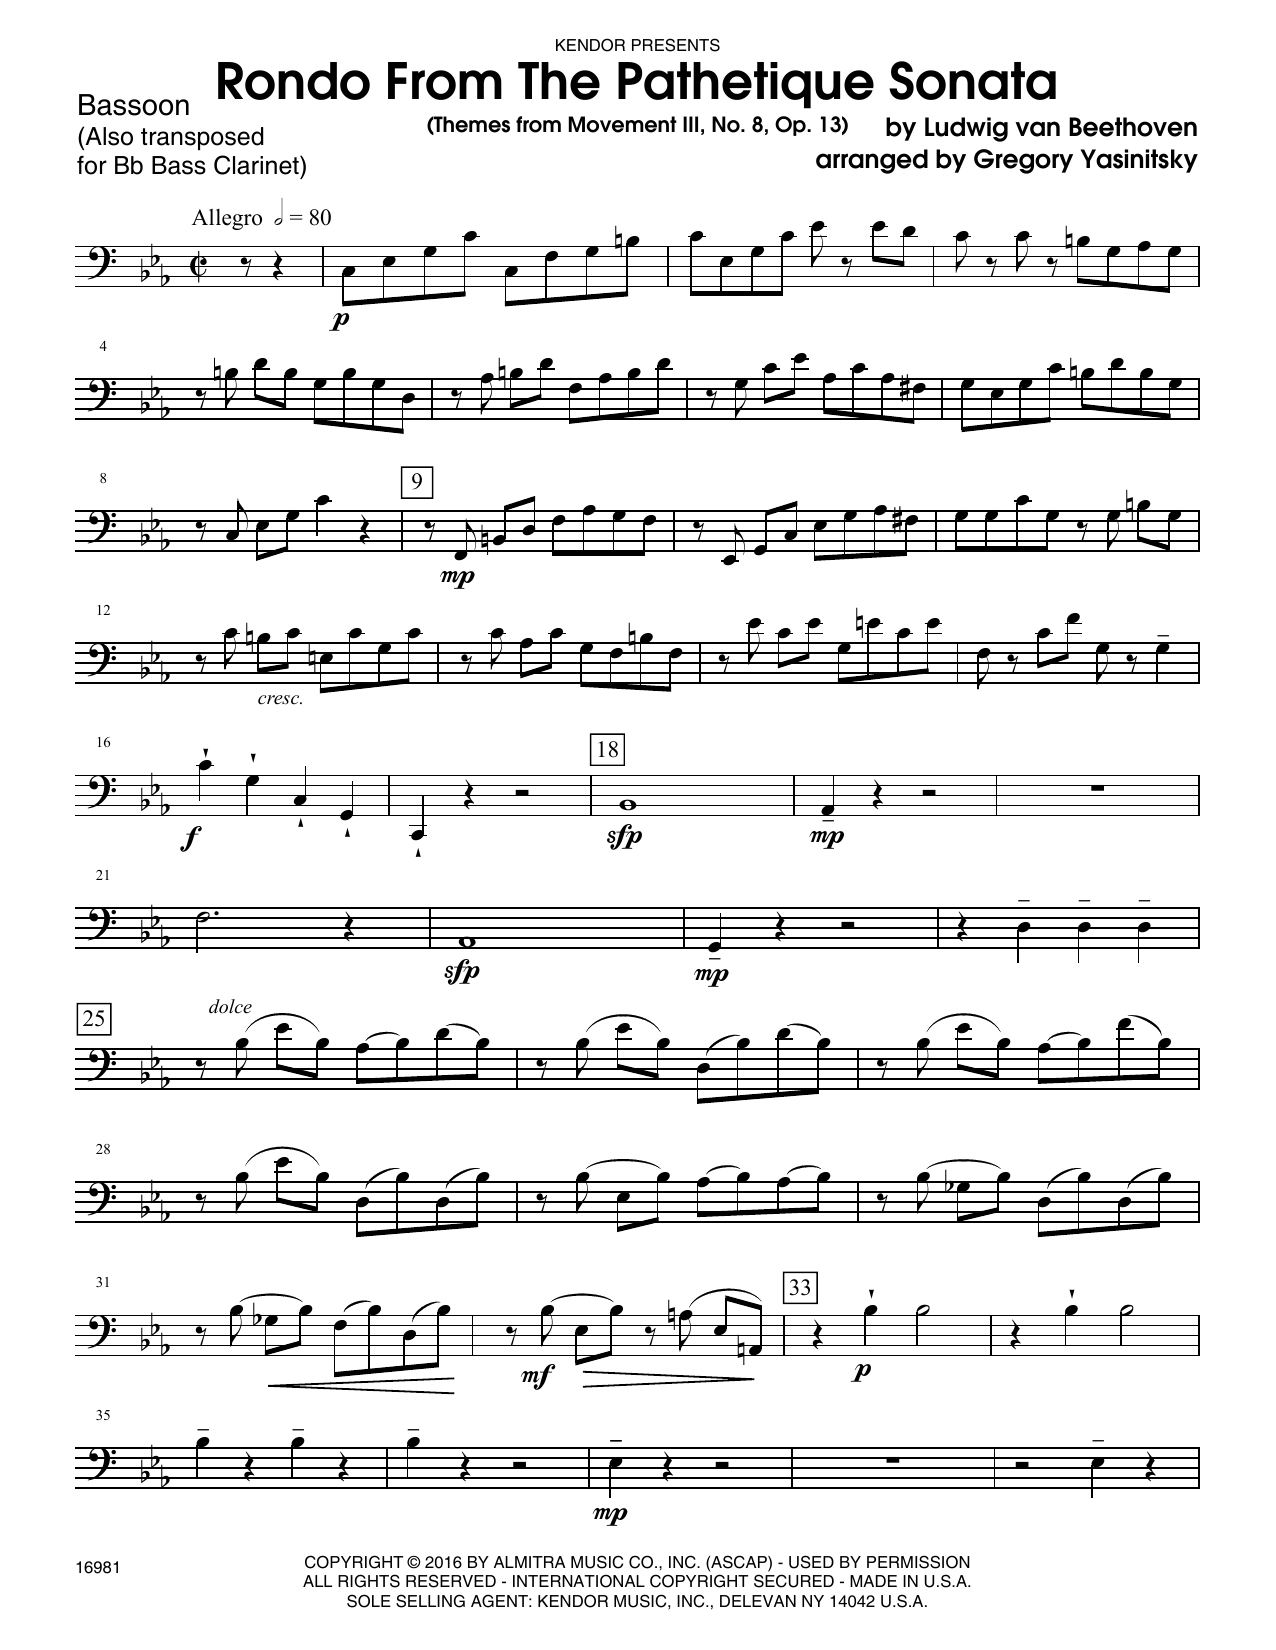 Rondo From The Pathetique Sonata (Themes From Movement III, No. 8, Op. 13) - Bassoon Sheet Music